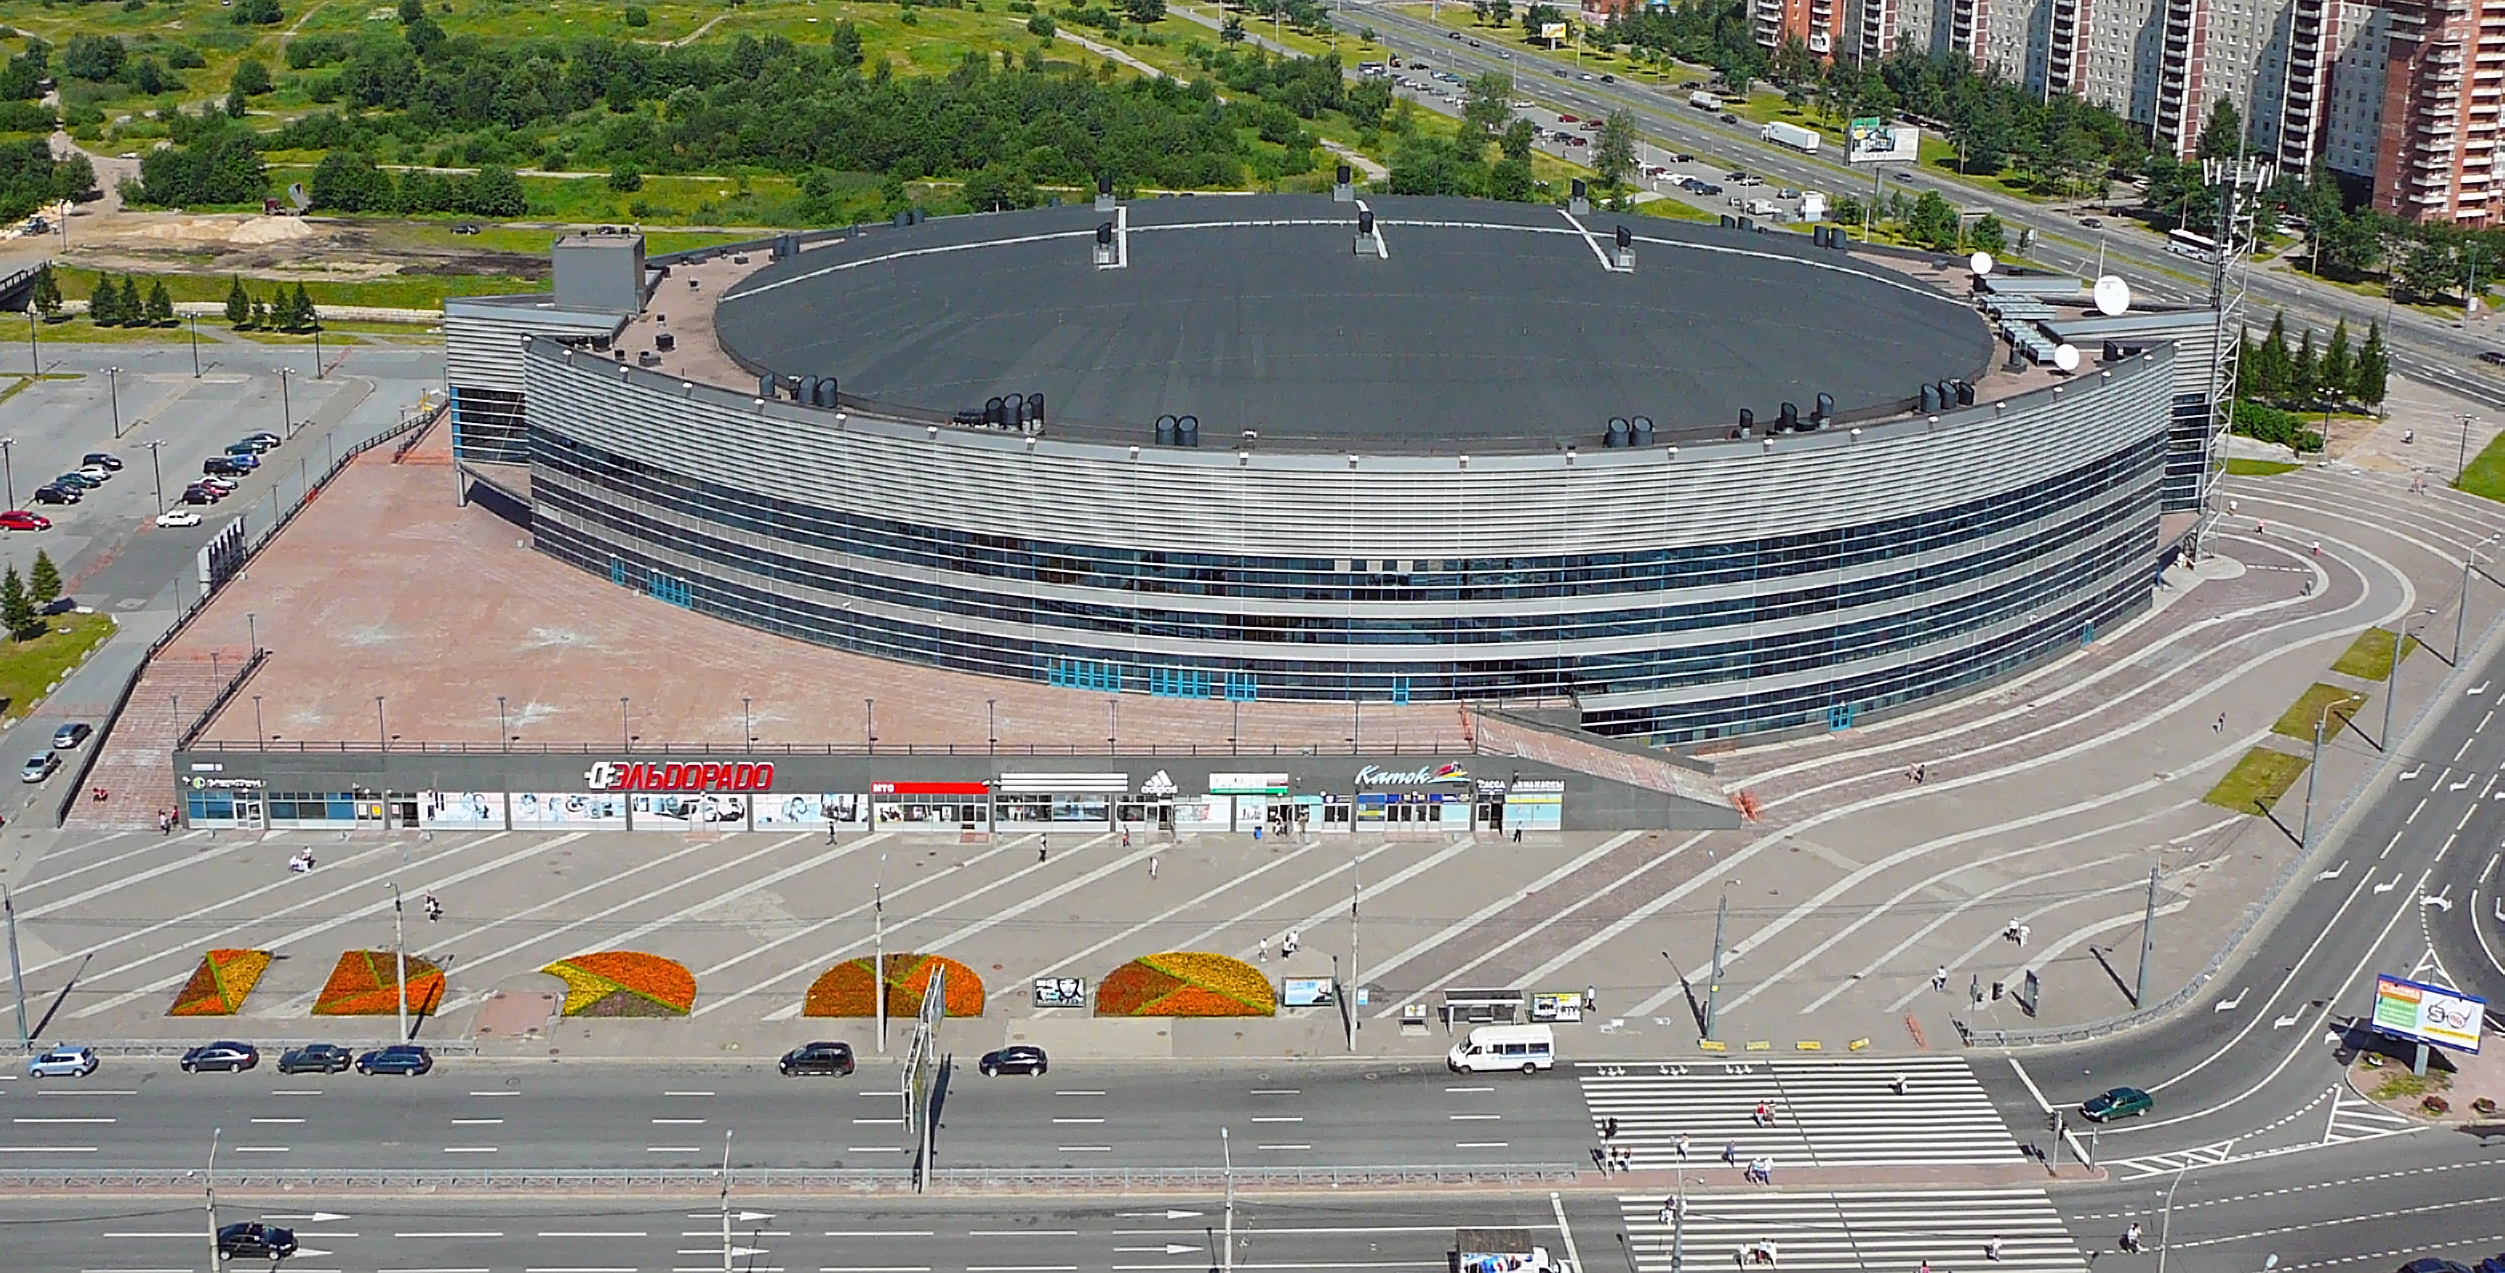 Ice Palace (Murmansk) - the center of entertainment and sports life of the city